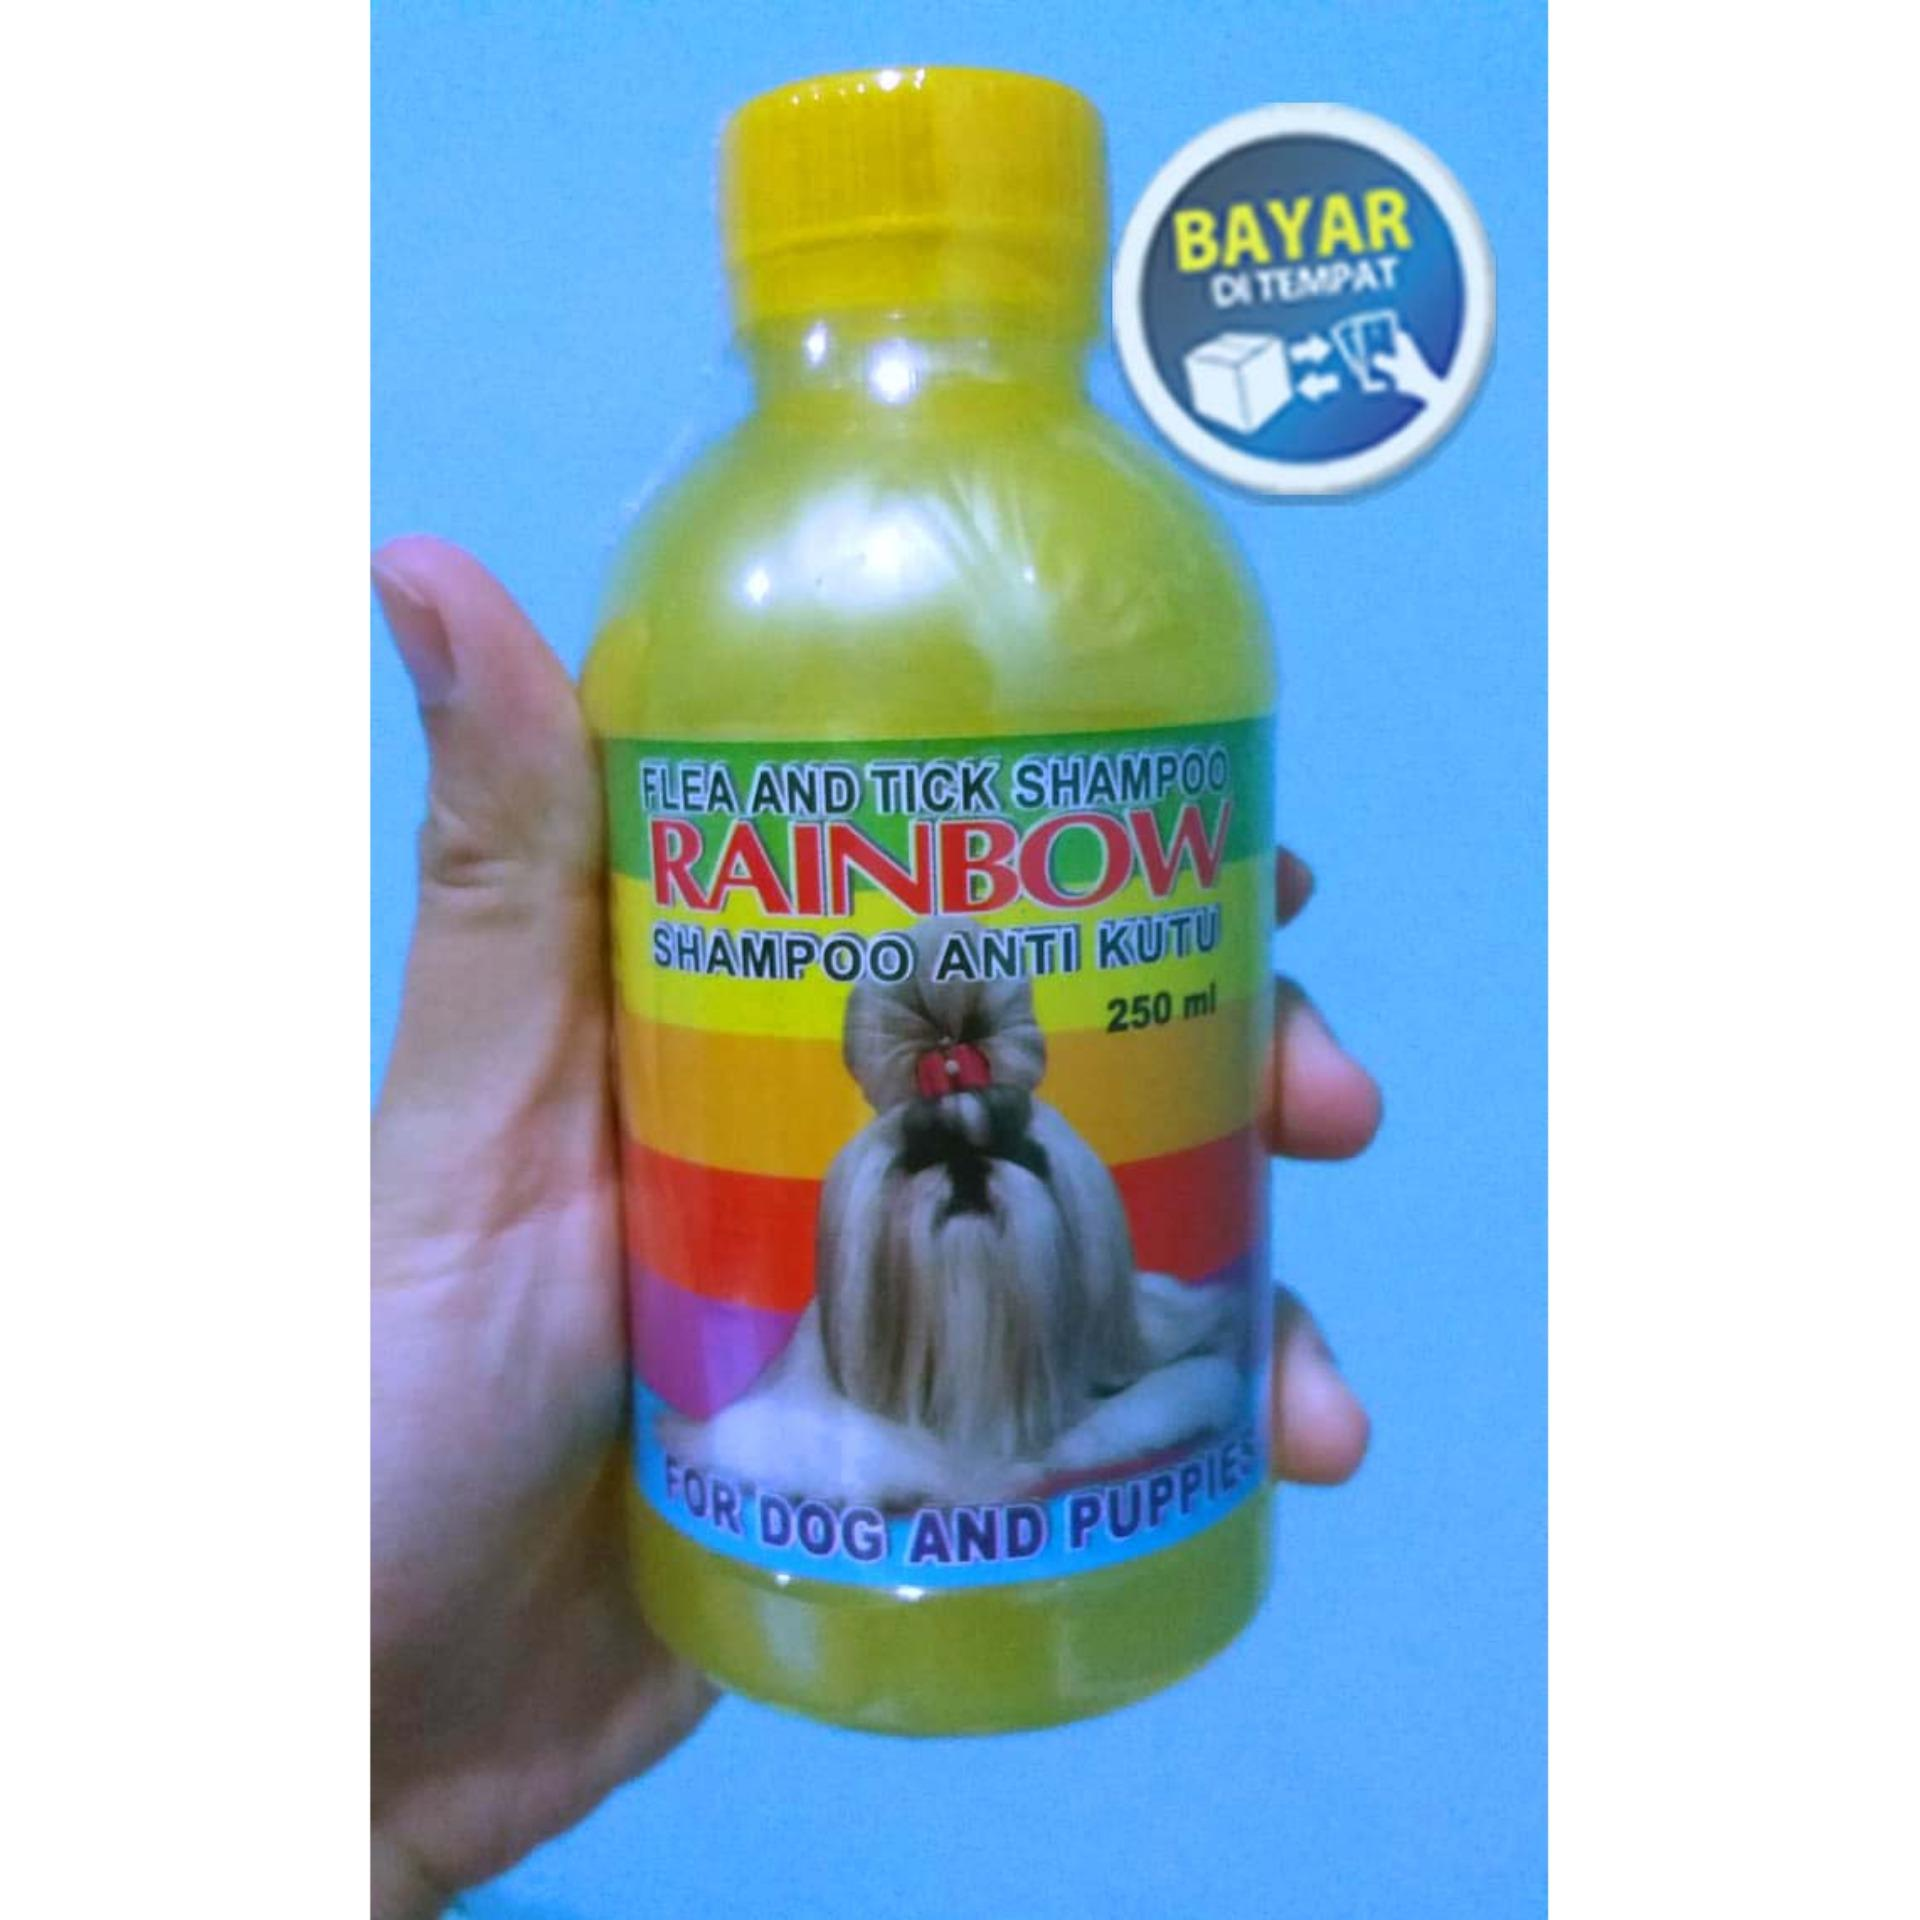 Shampoo Anti Kutu Anjing & Flea Rainbow Ukuran 250ml Kuning By Banyu Shop.